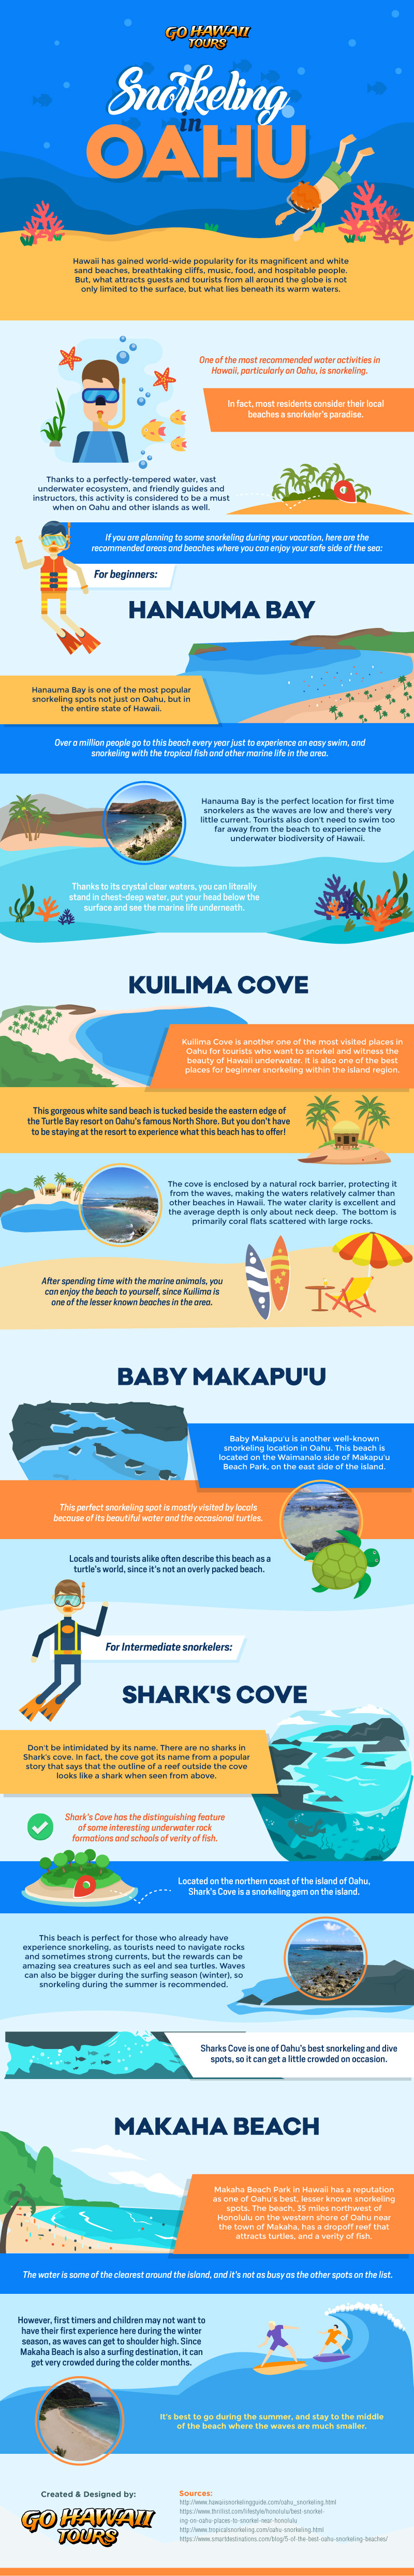 Snorkeling in Oahu [Infographic]